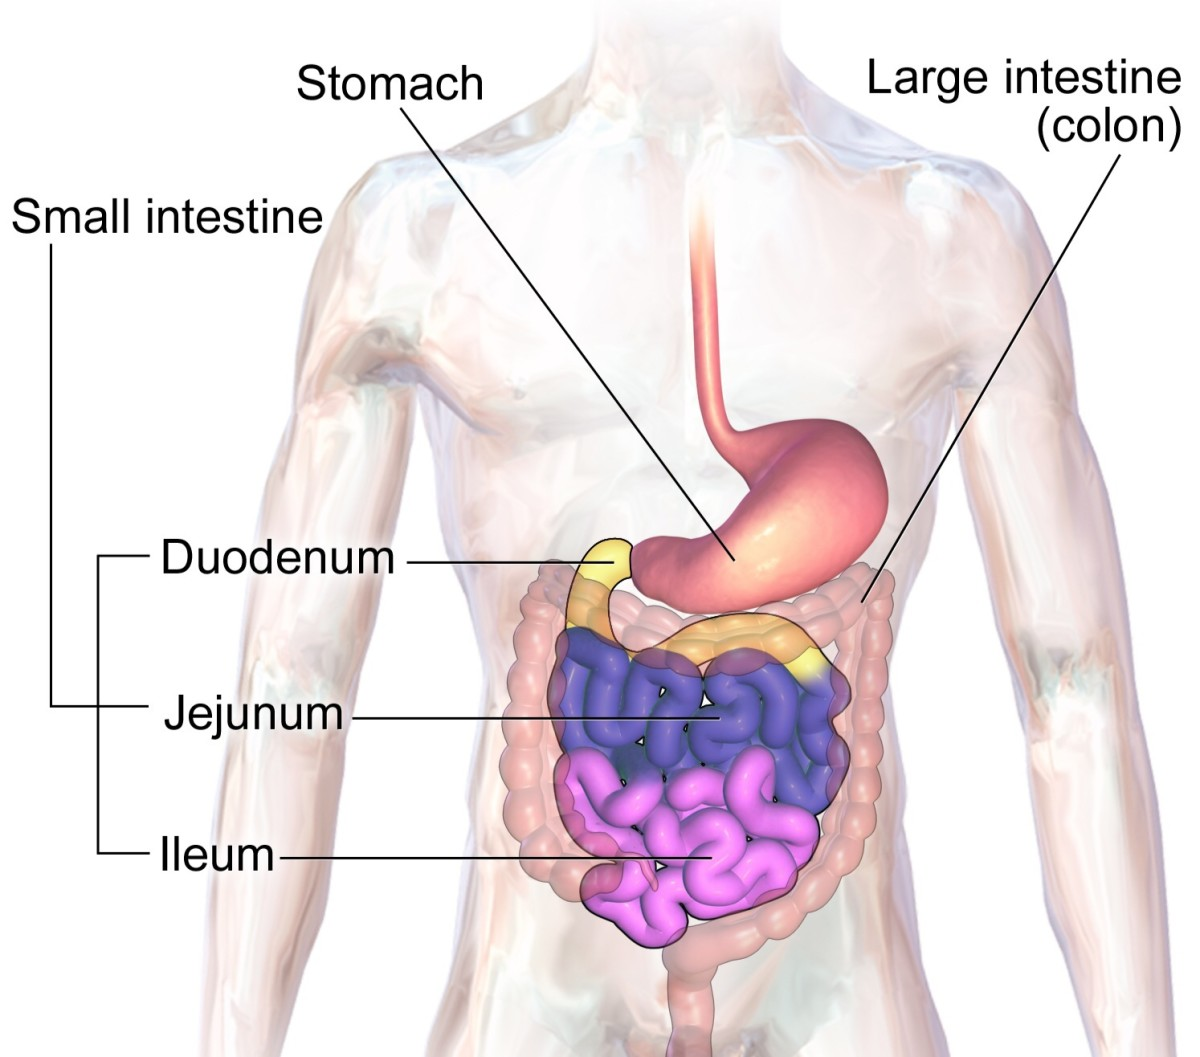 Our large intestine is inhabited by a large population of bacteria.